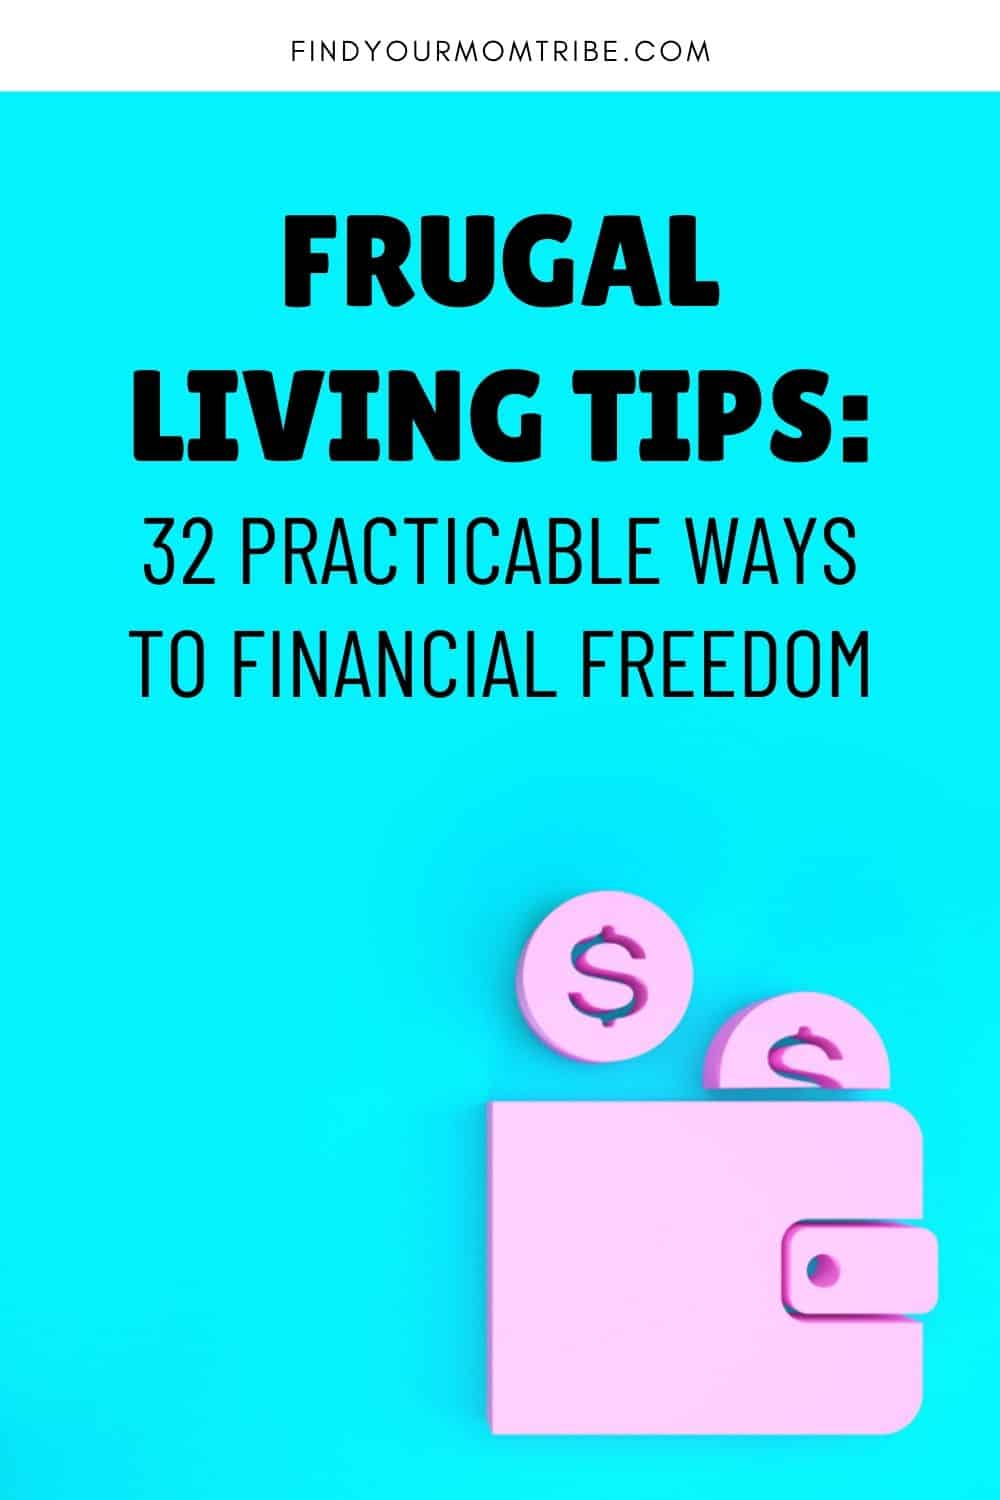 Frugal Living Tips Pinterest